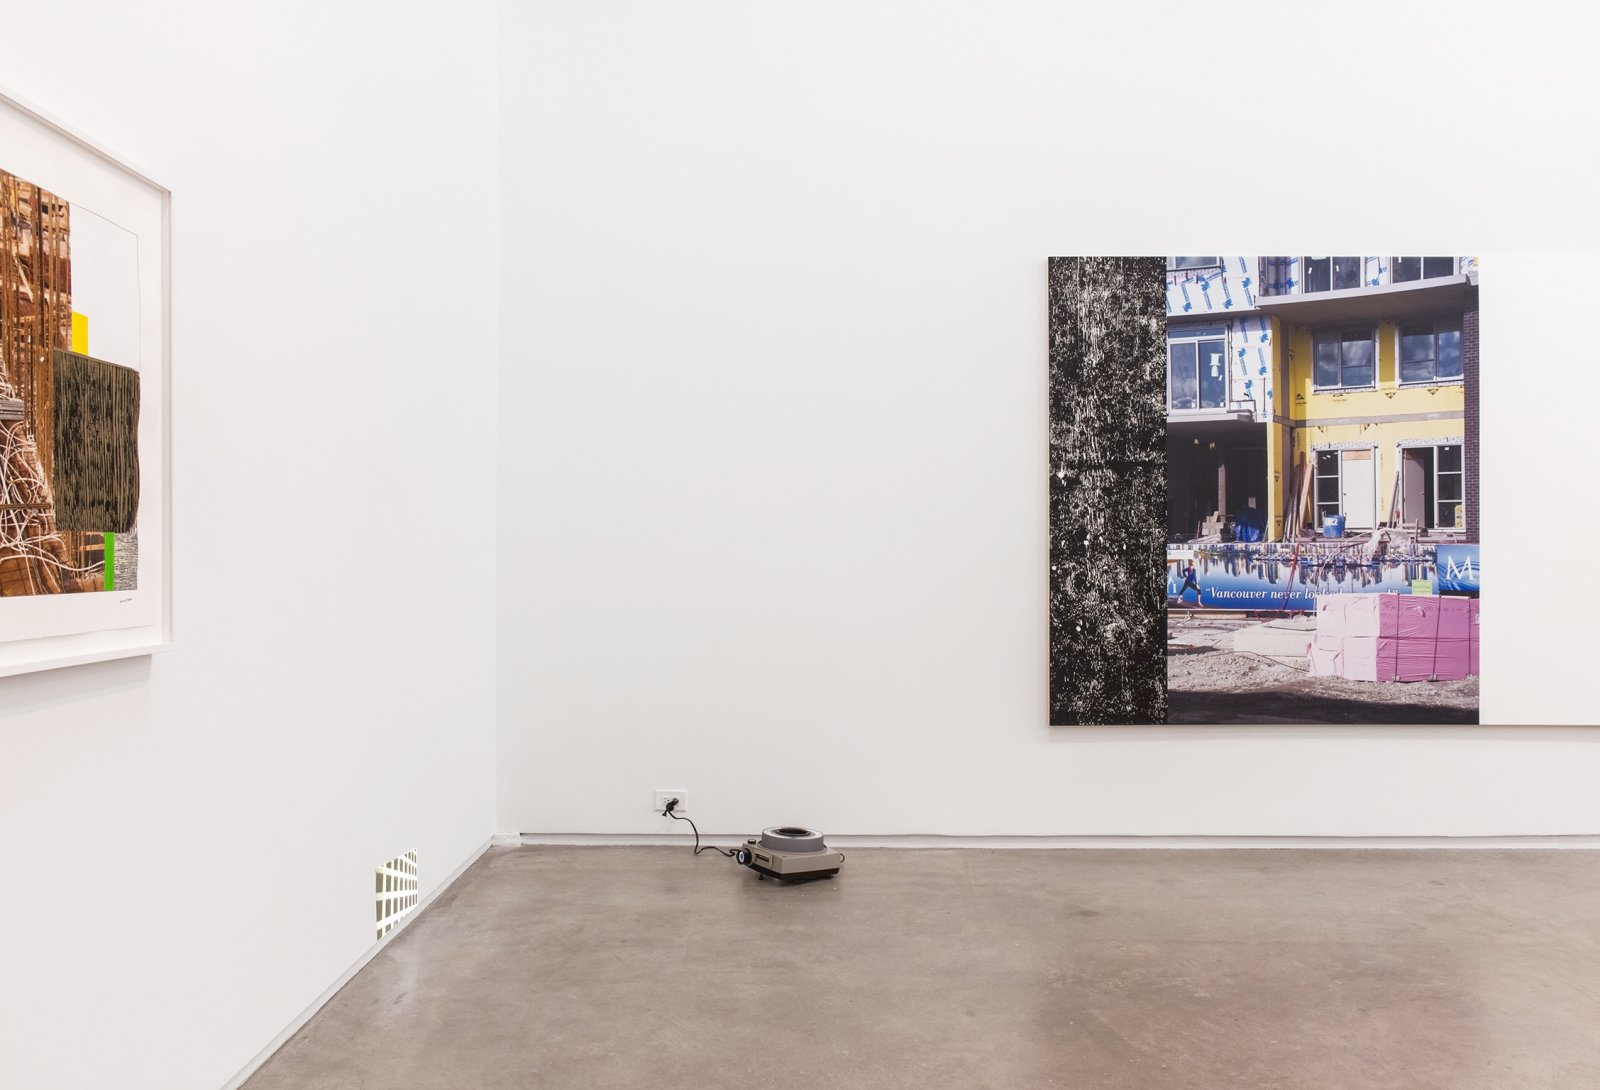 Ian Wallace, installation view, The Construction Site, Catriona Jeffries, 2015 by Ian Wallace